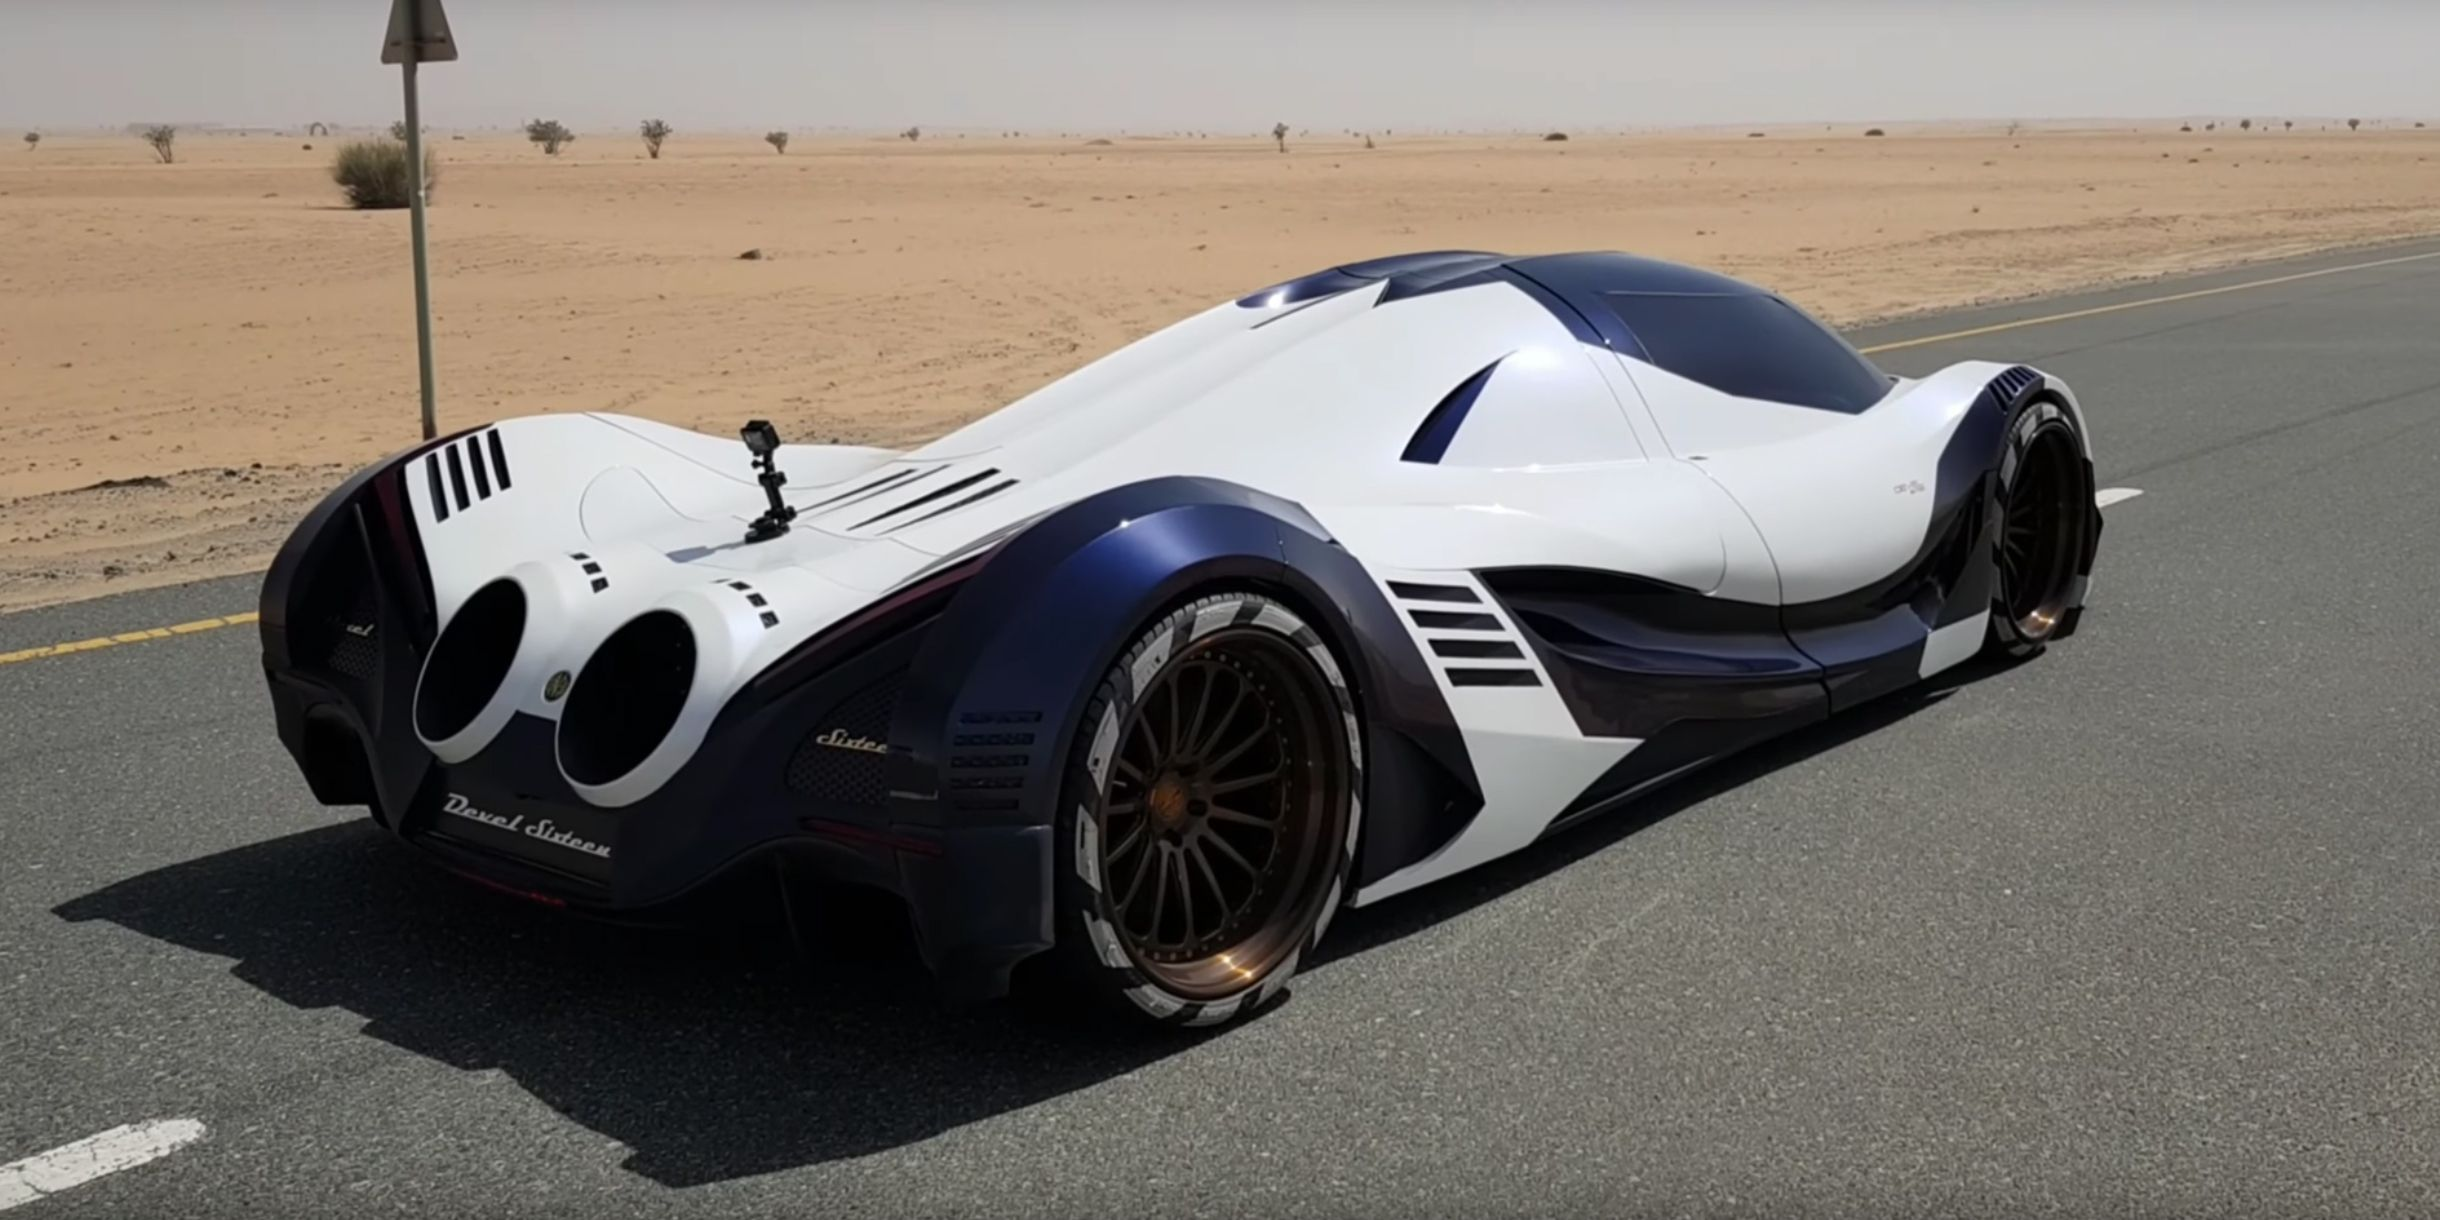 5000-HP Devel Sixteen Seems Slightly More Real in New Video